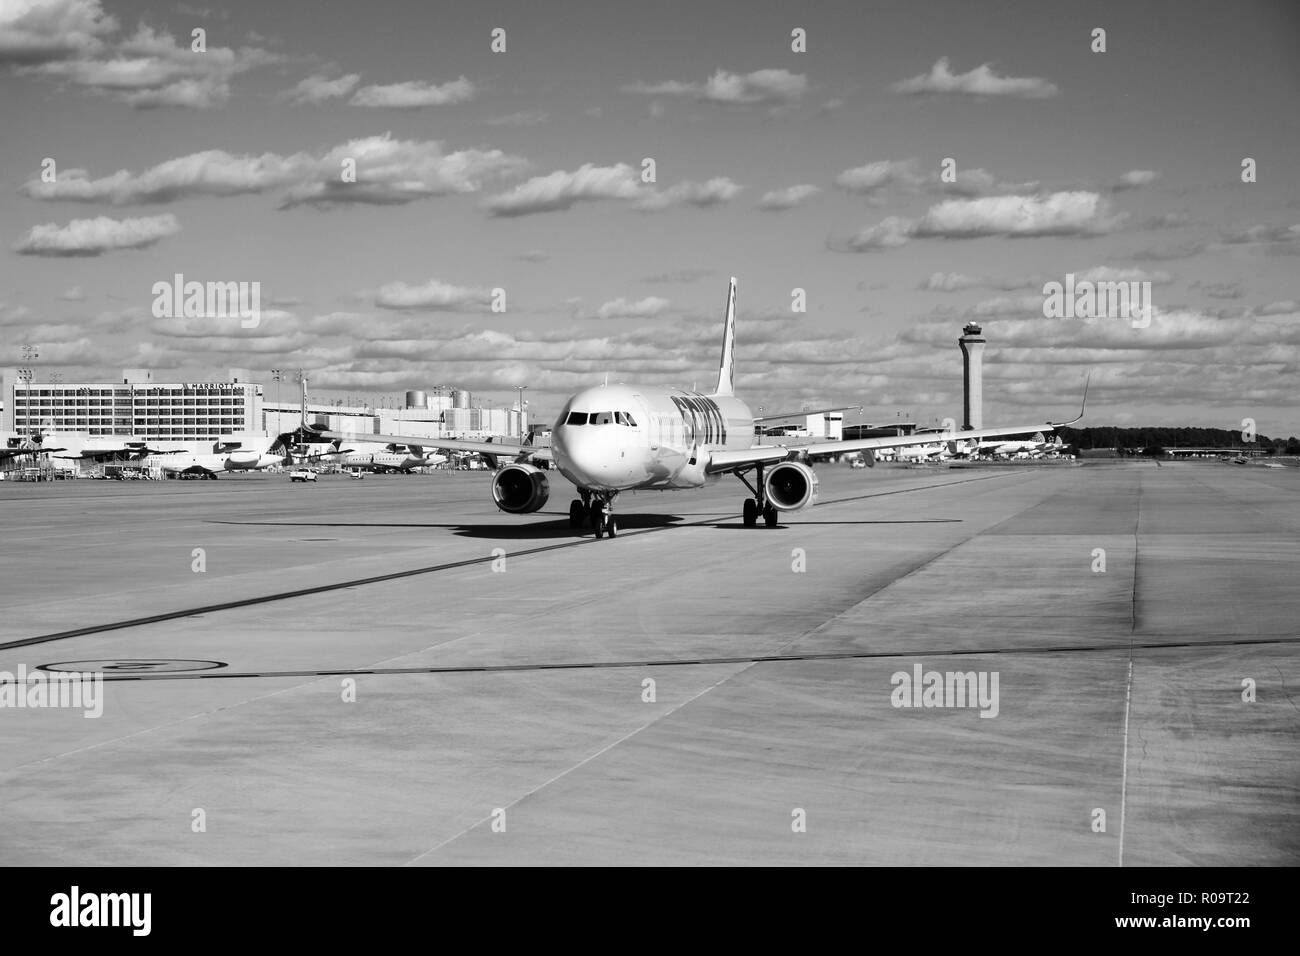 Spirit Airlines (N683NK) Airbus A321 taxiing on the runway before taking off from George Bush Intercontinental Airport, Houston, Texas, USA. - Stock Image